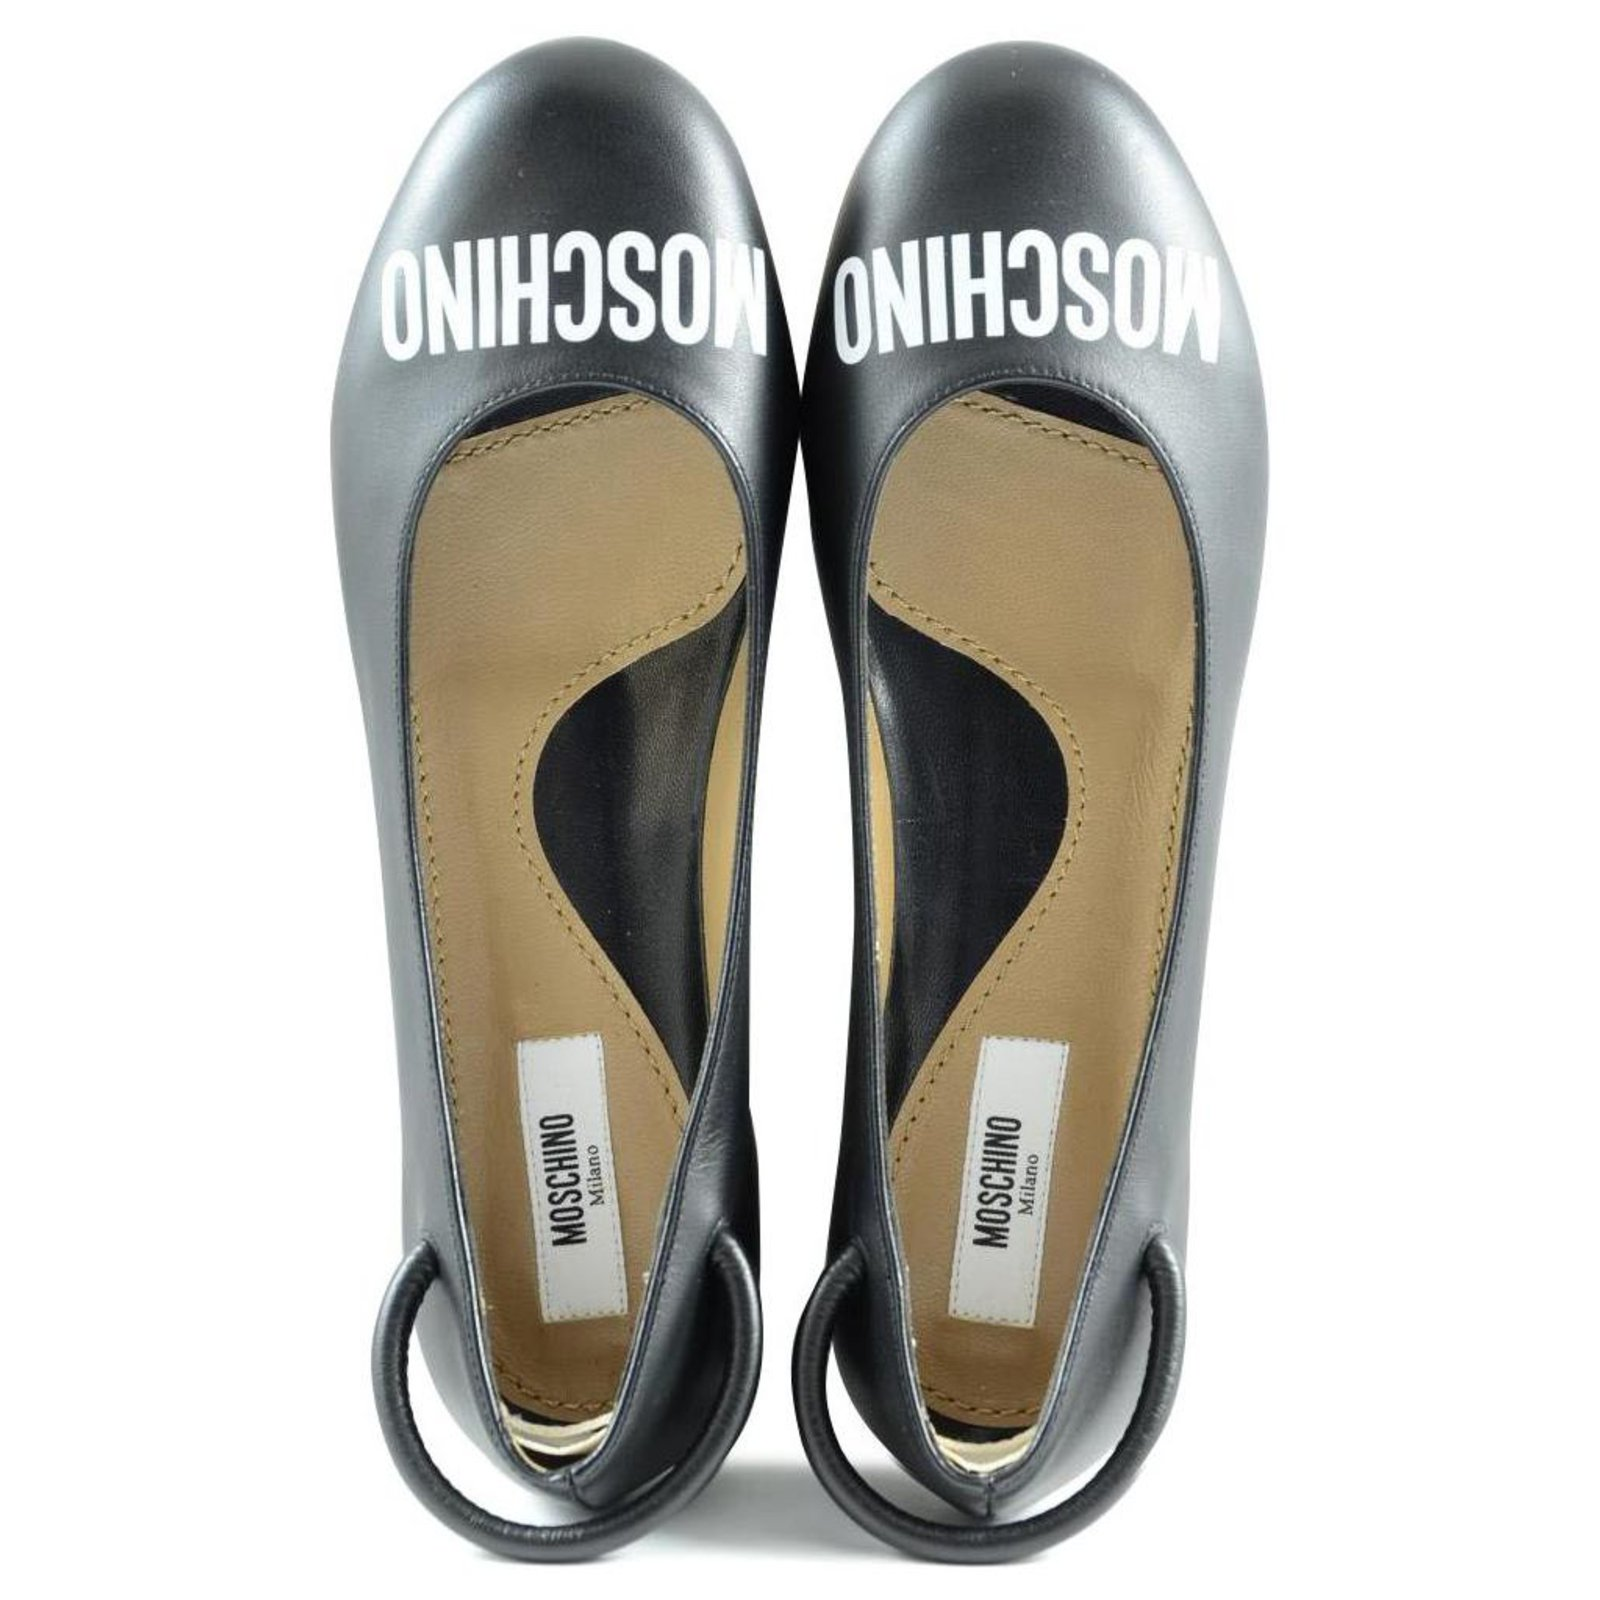 Moschino Moschino shoes new Ballet